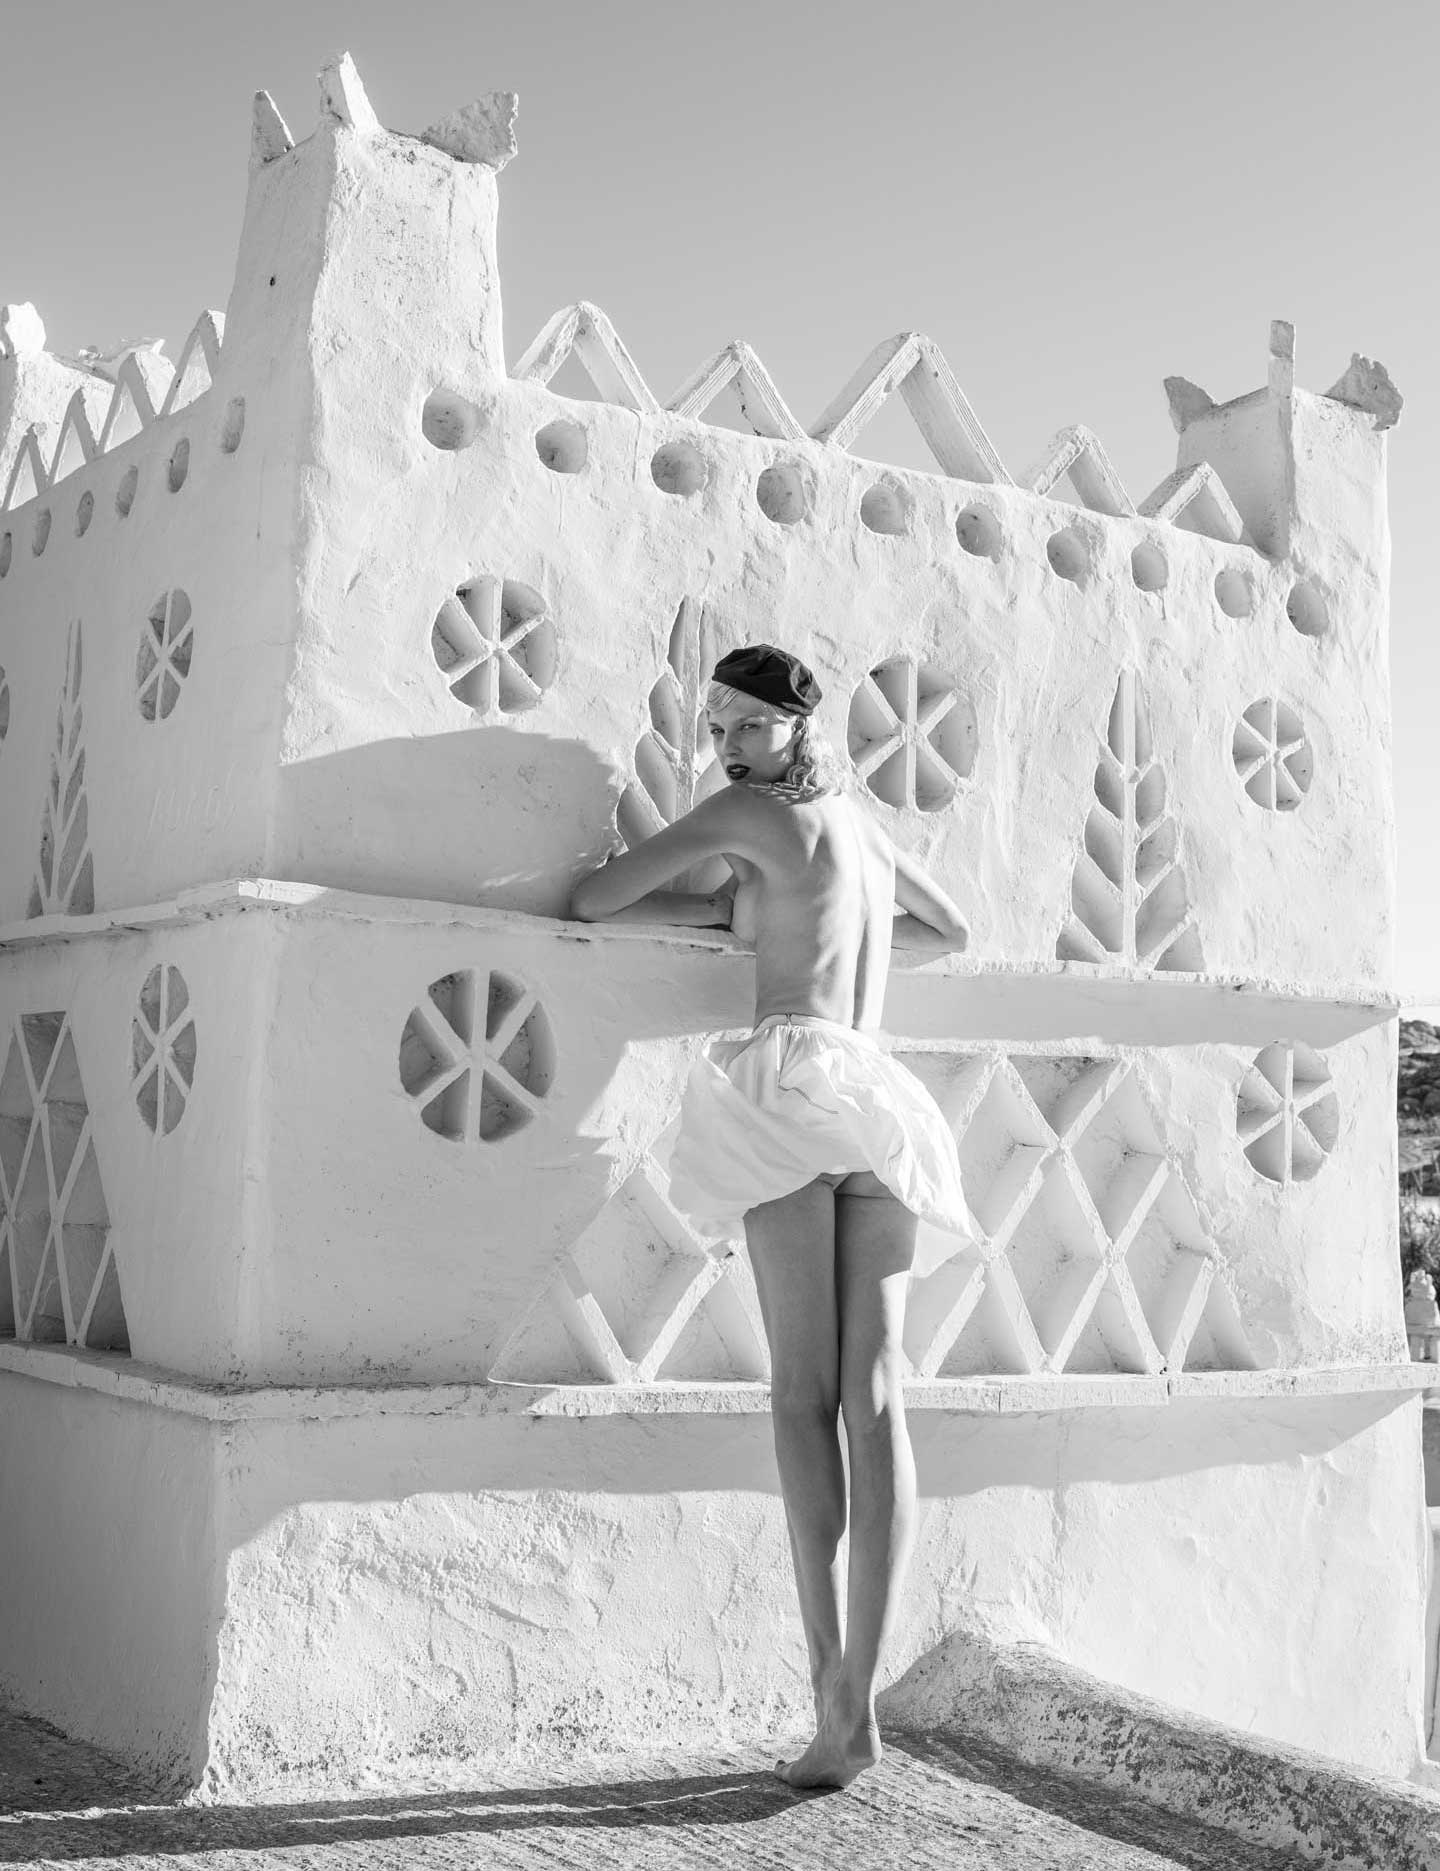 Mara Desipris pays tribute to the ultimate Greek beauty of her favorite islands